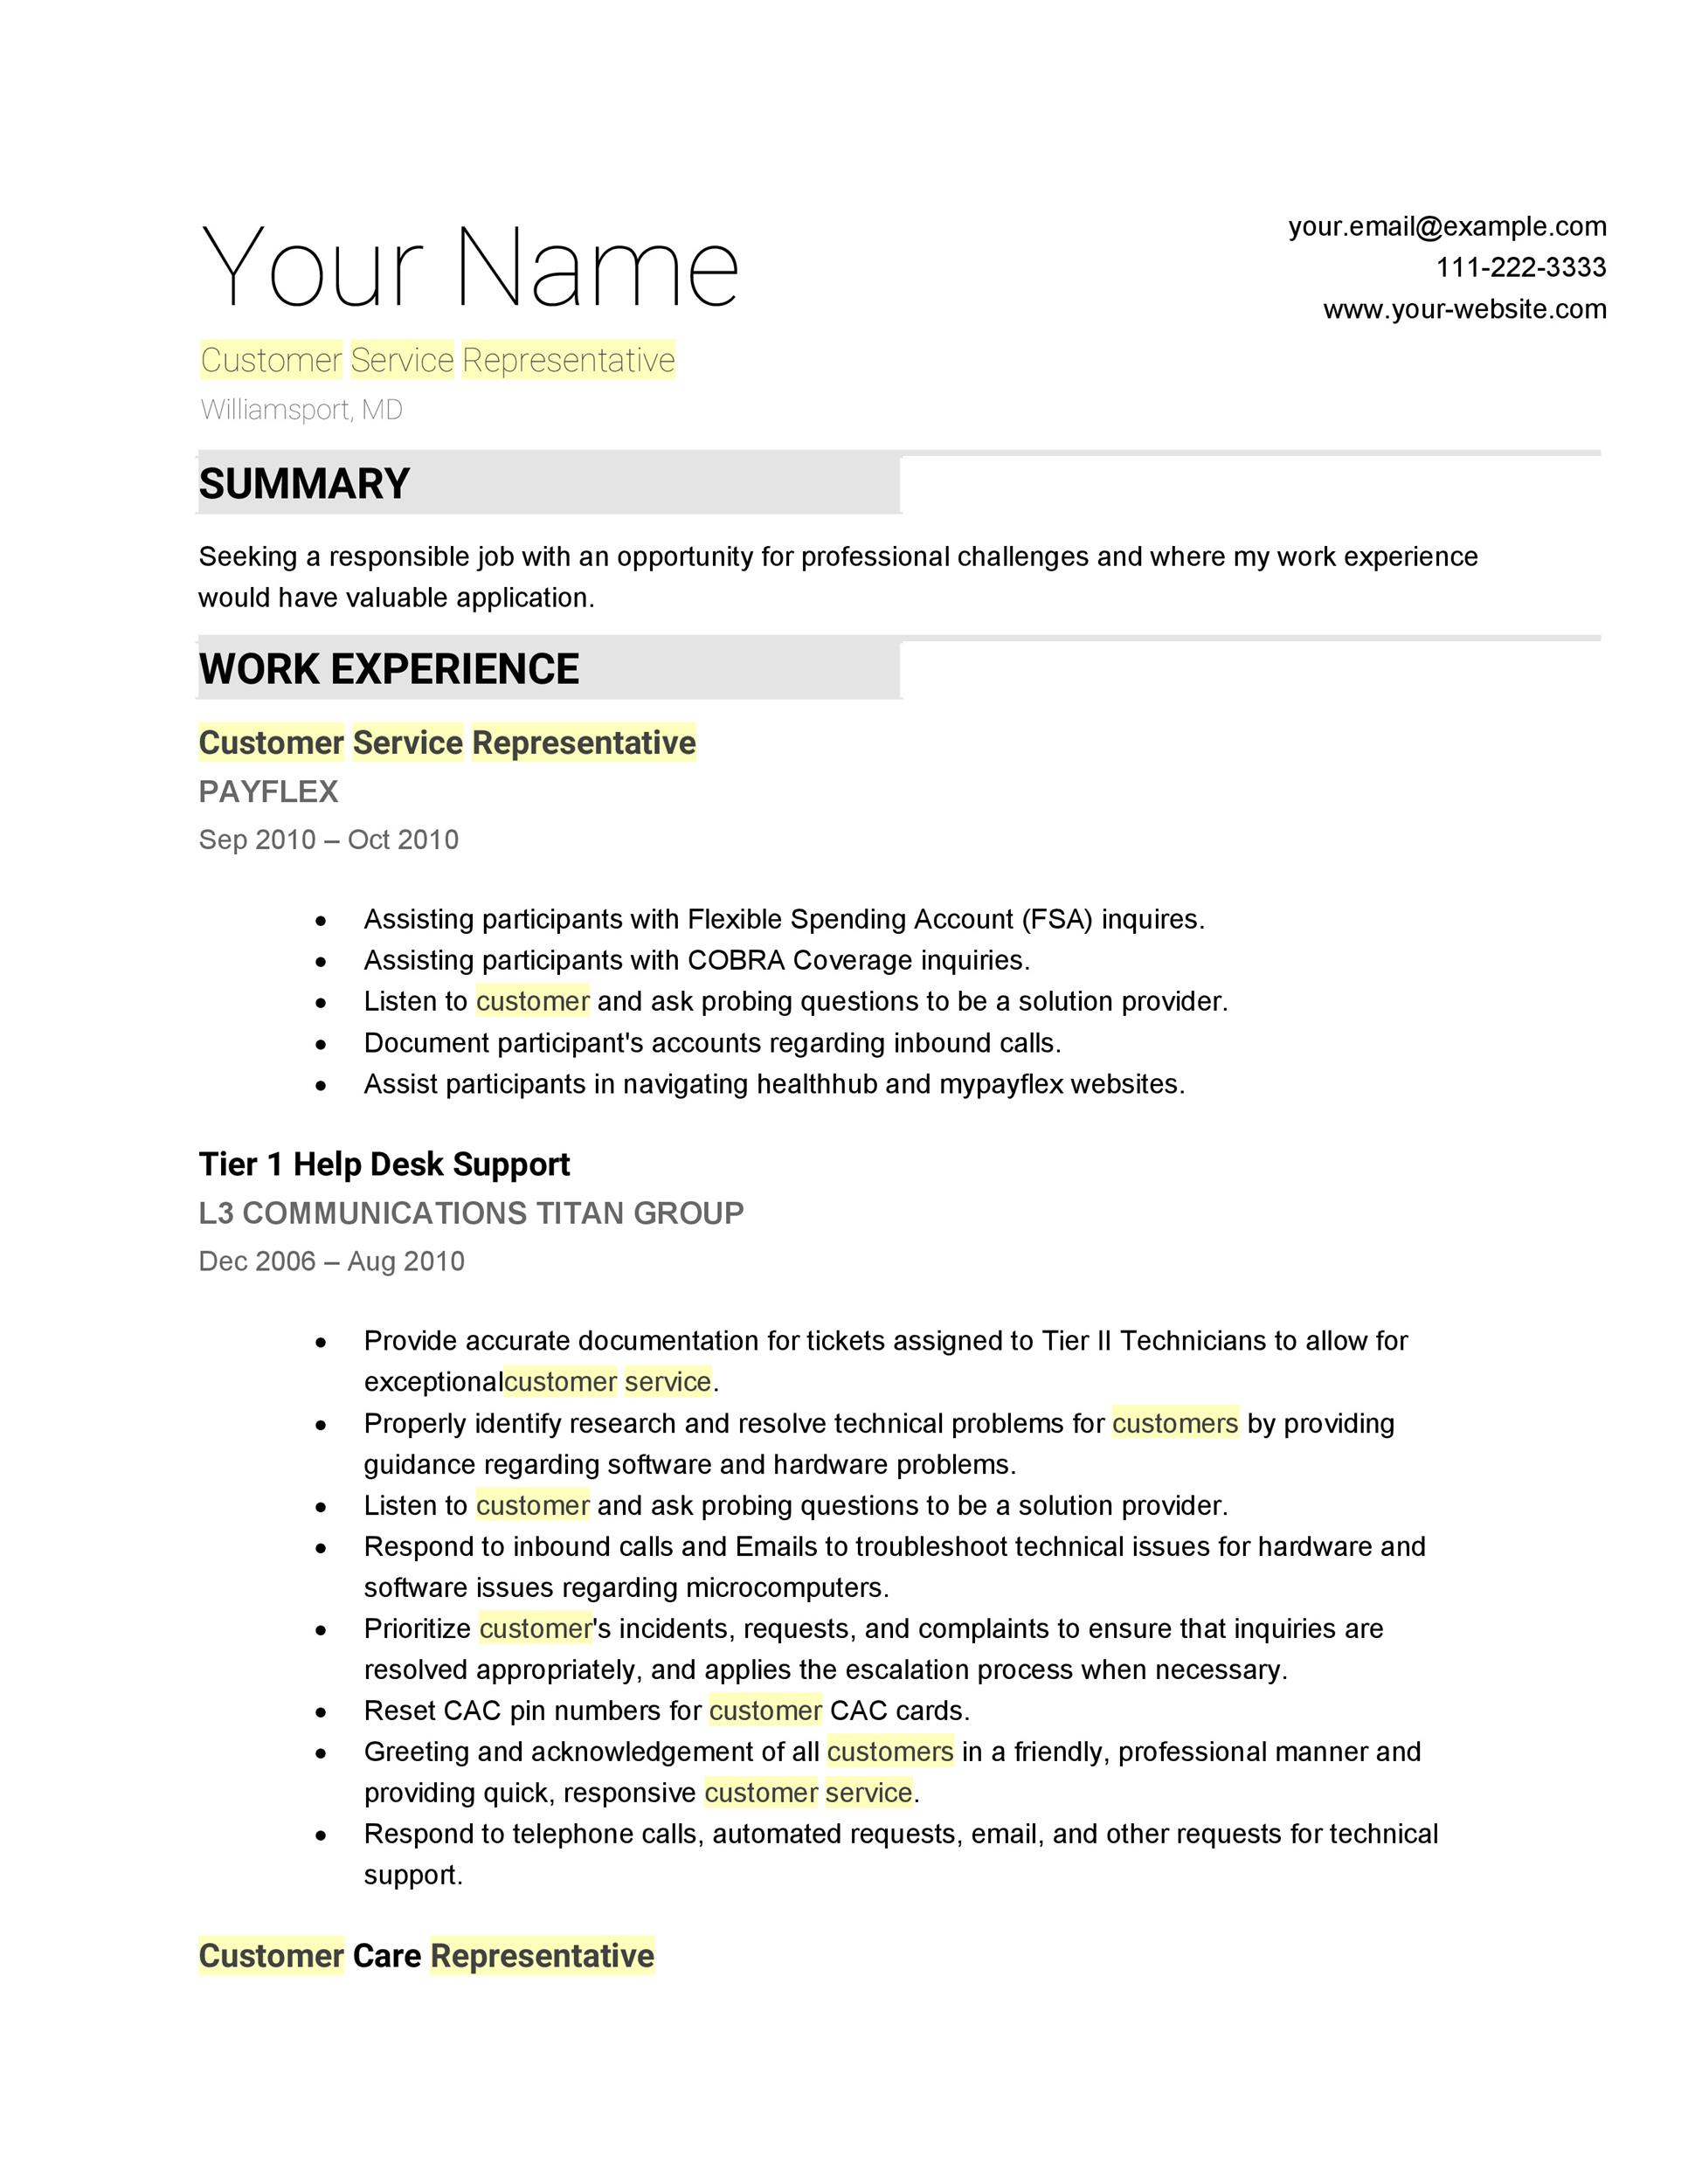 customer service resume template 10 - Customer Service Resumes Templates